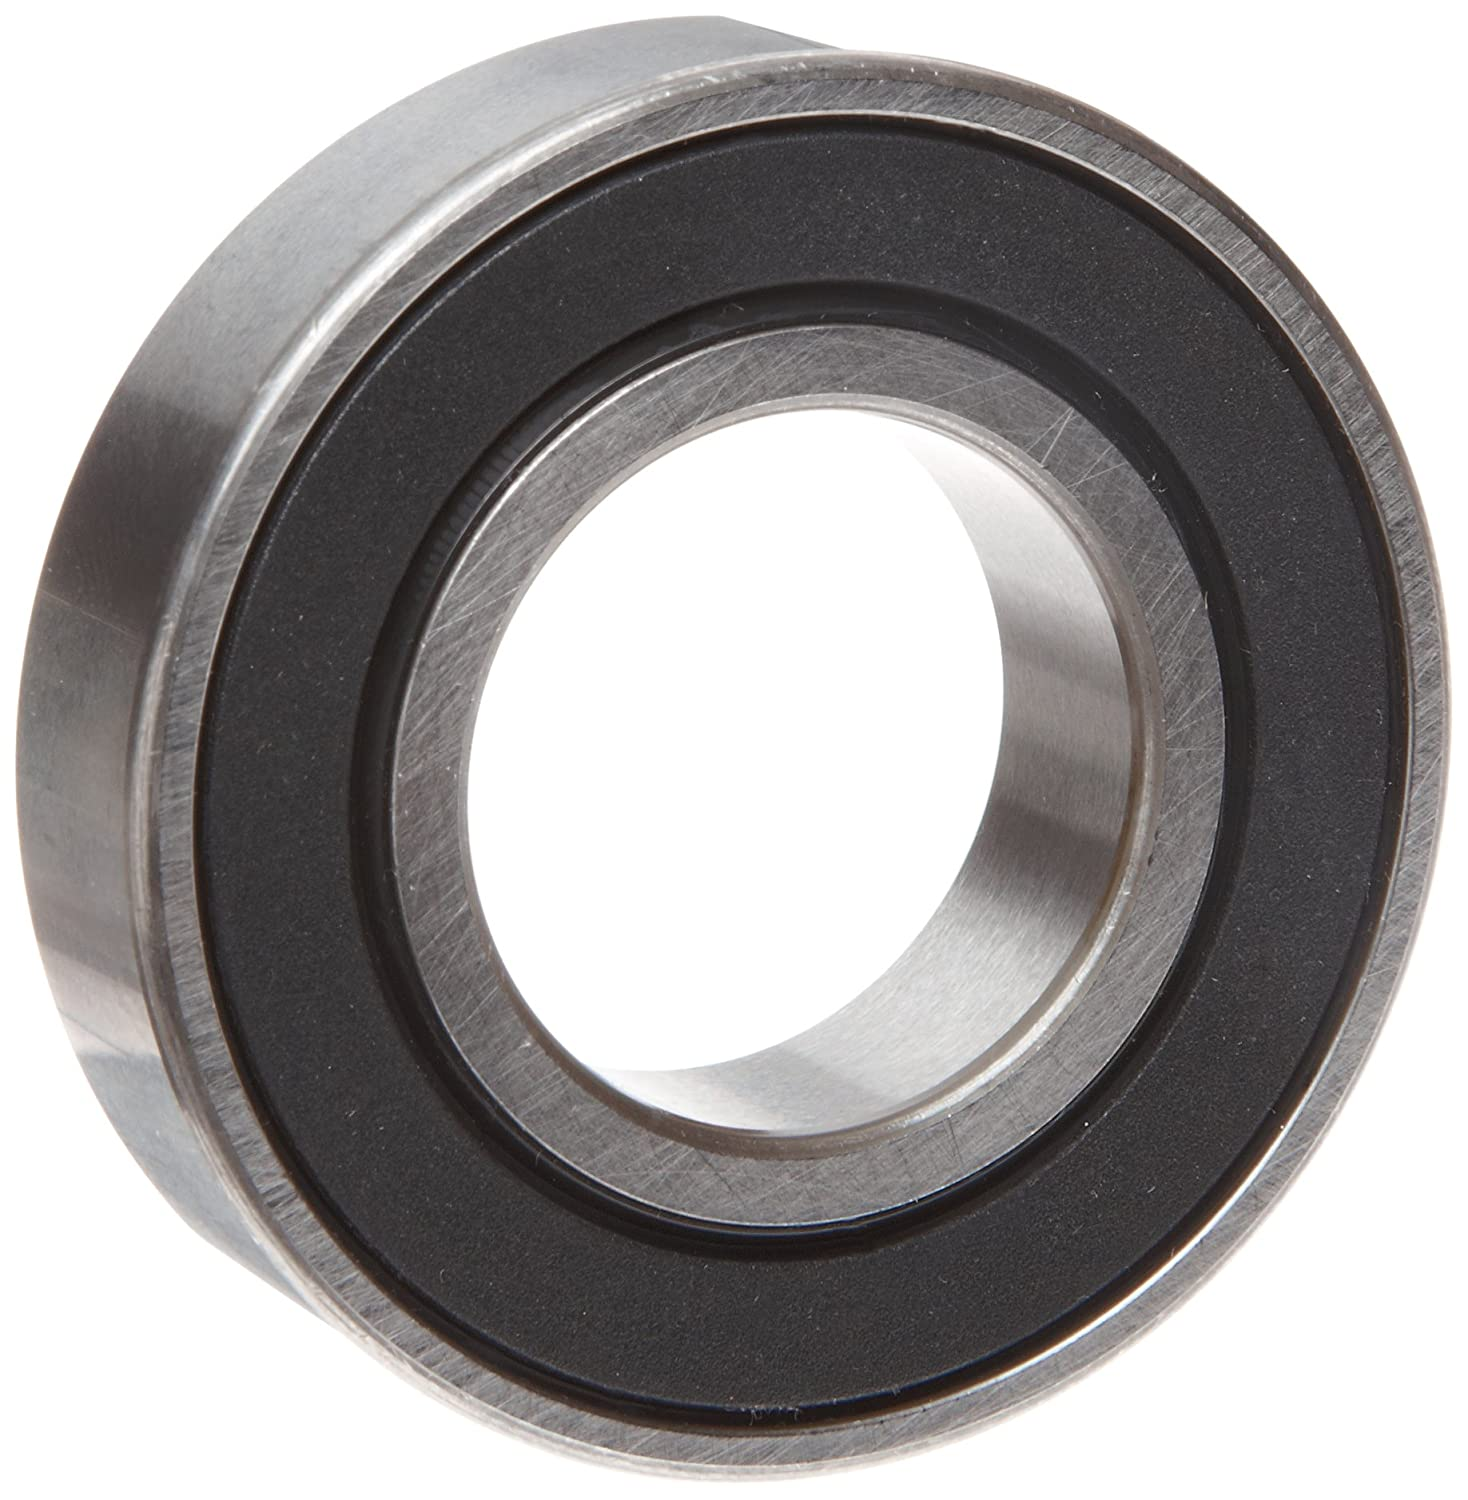 4300 rpm Max RPM Open 1-5//16 Width 10700 pounds Static Load Capacity No Snap Ring Metric 55 millimeters ID 100 millimeters OD MRC 5211C Ball Bearing 12900 pounds Dynamic Load Capacity 1-5//16 Width